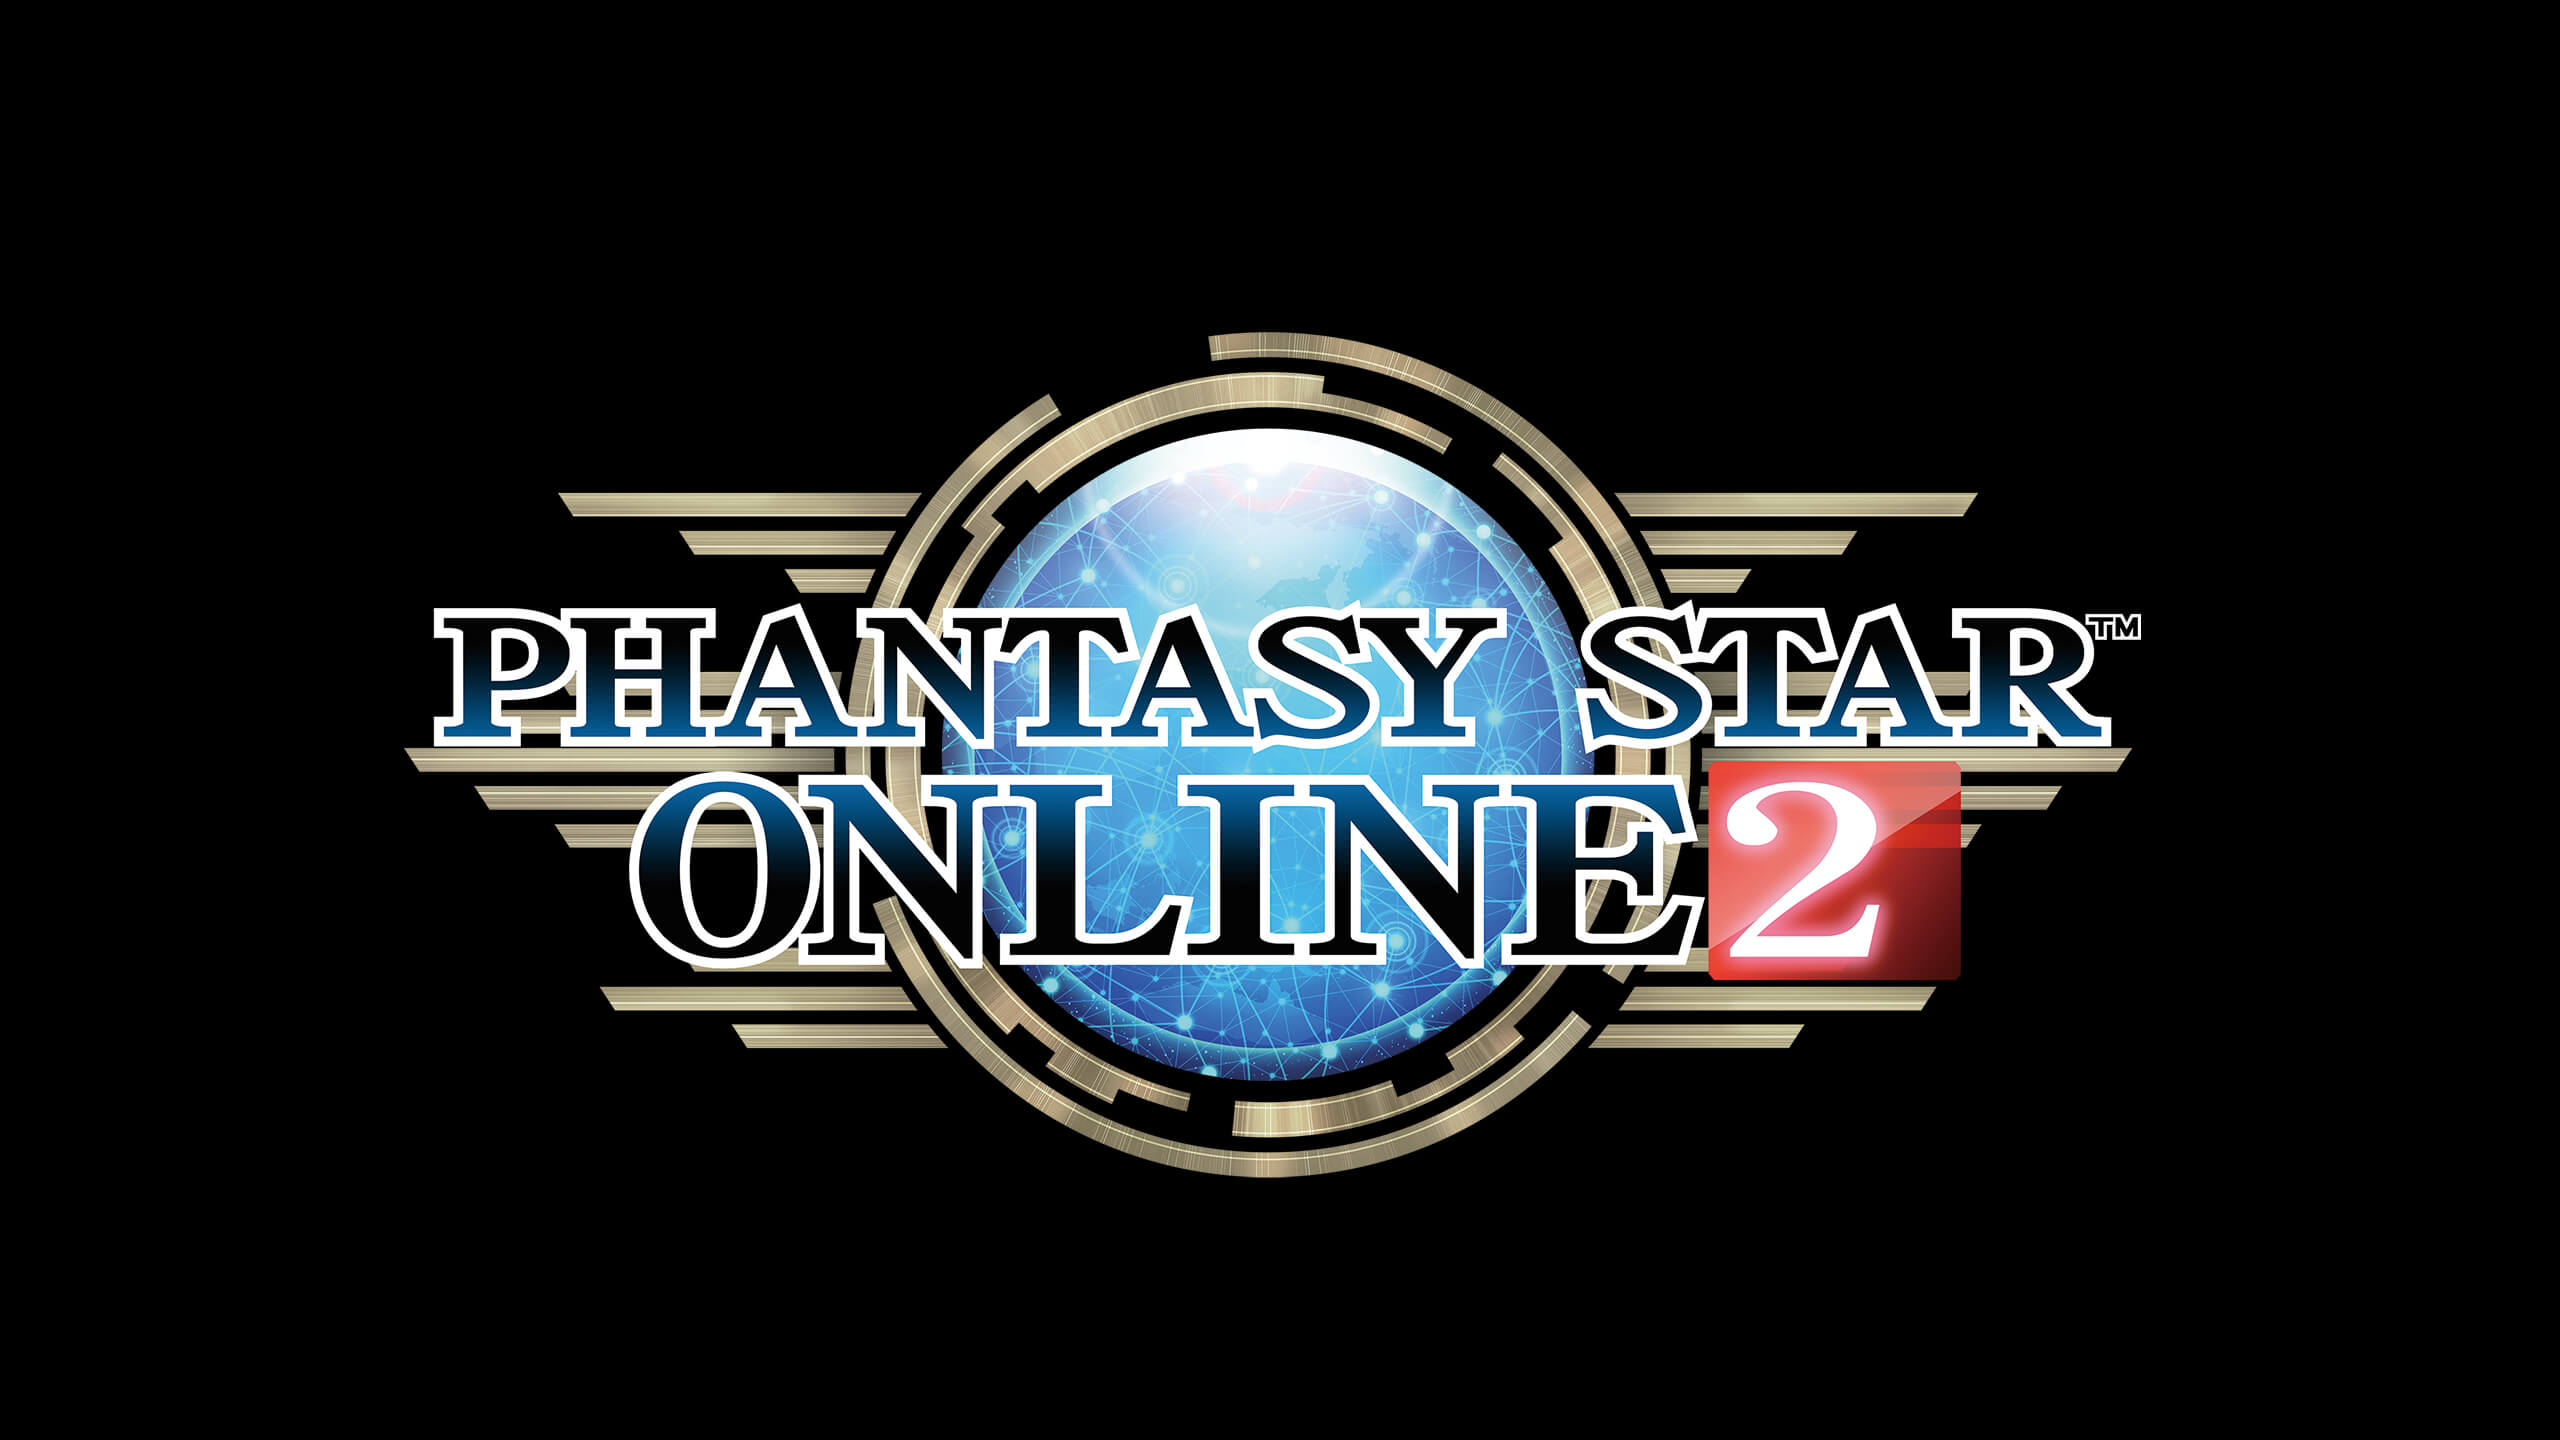 Read story: Phantasy Star Online 2 expands to North America using Azure